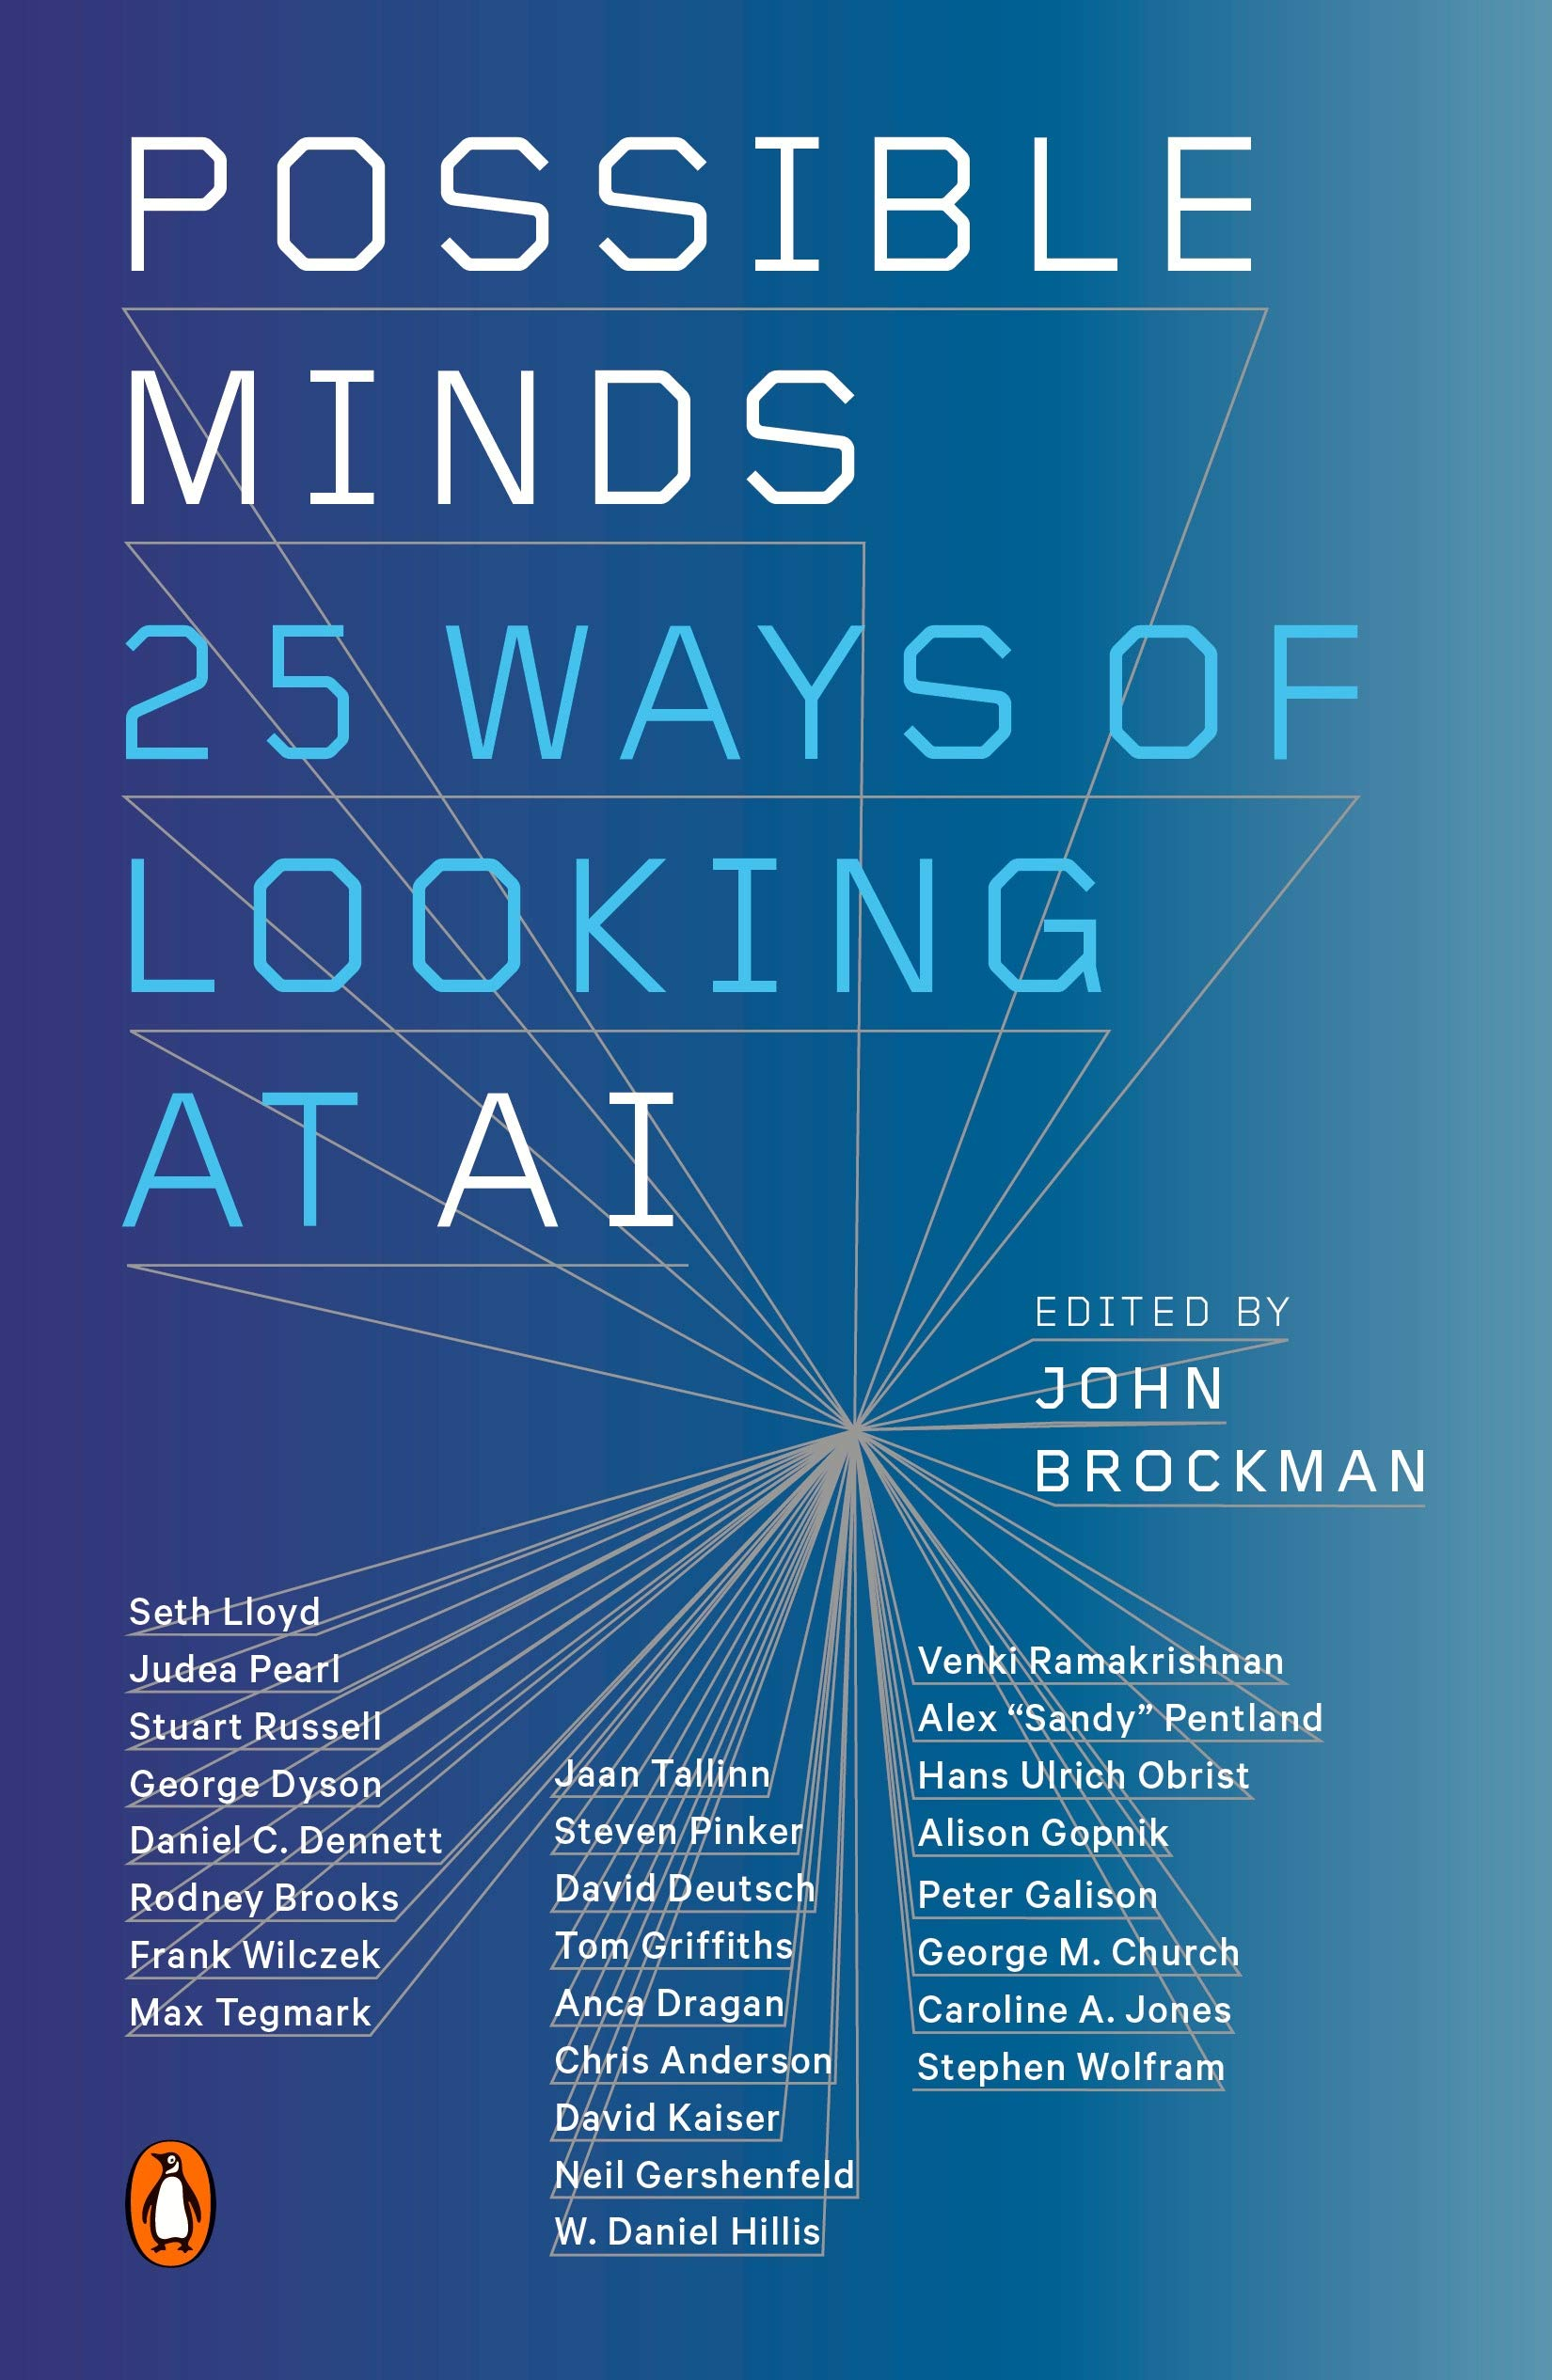 Image result for 3. Possible Minds: 25 Ways of Looking at AI edited by John Brockman